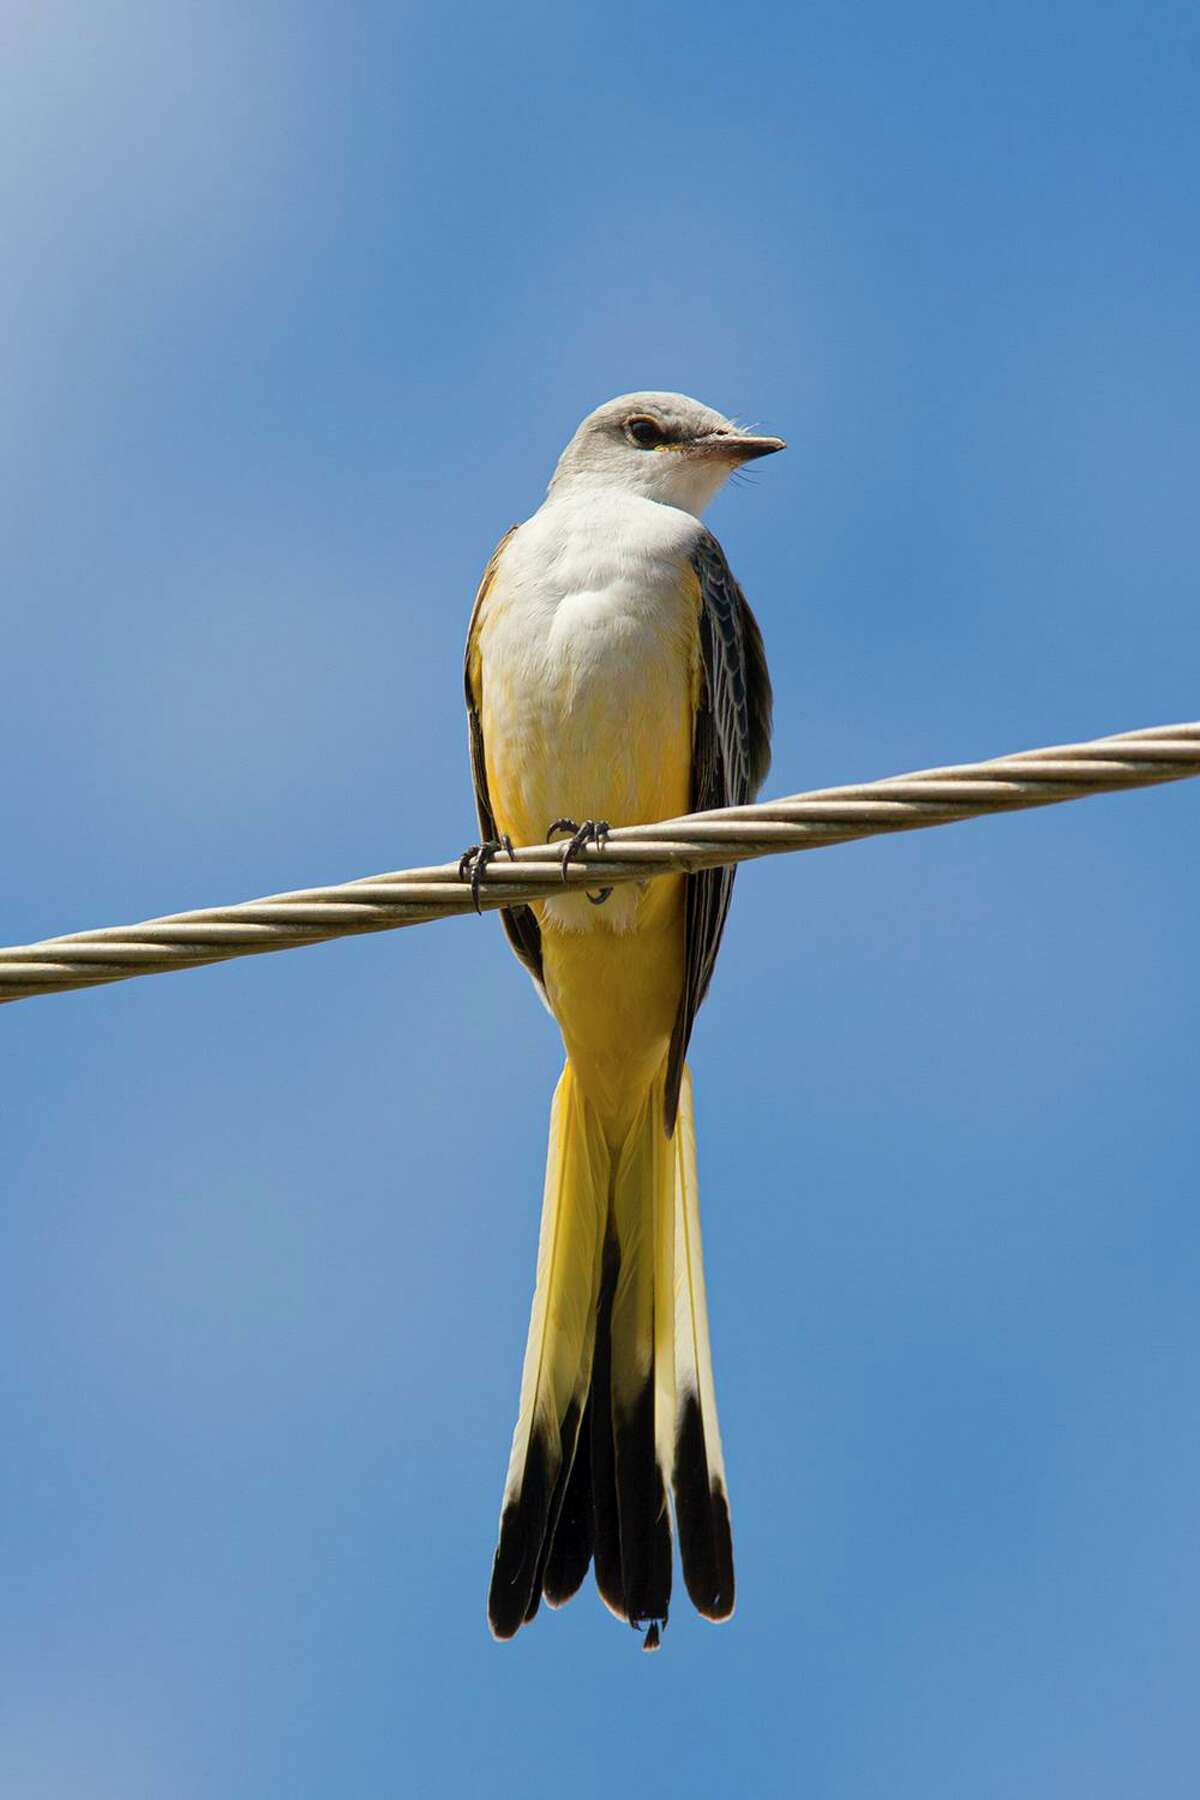 Scissor-tailed flycatchers are gathering on utility wires and in trees as they get ready for their annual migration to Mexico and Central America.